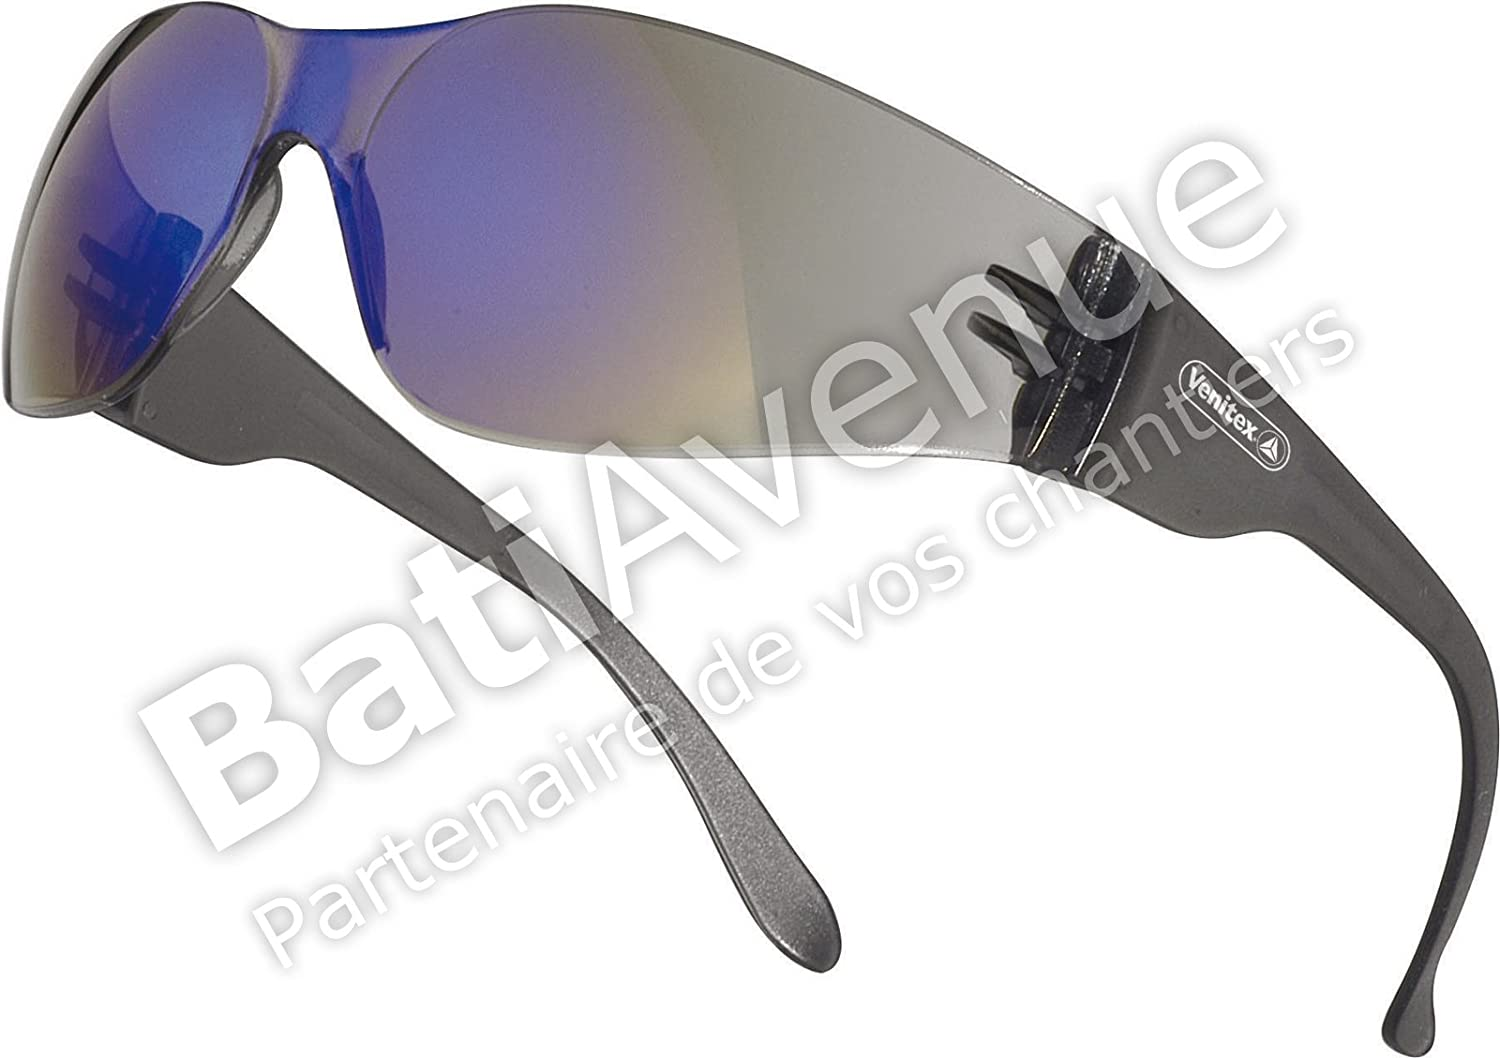 Delta Plus Venitex BRAVA 2 Light Mirror Safety Glasses BRAV2FF